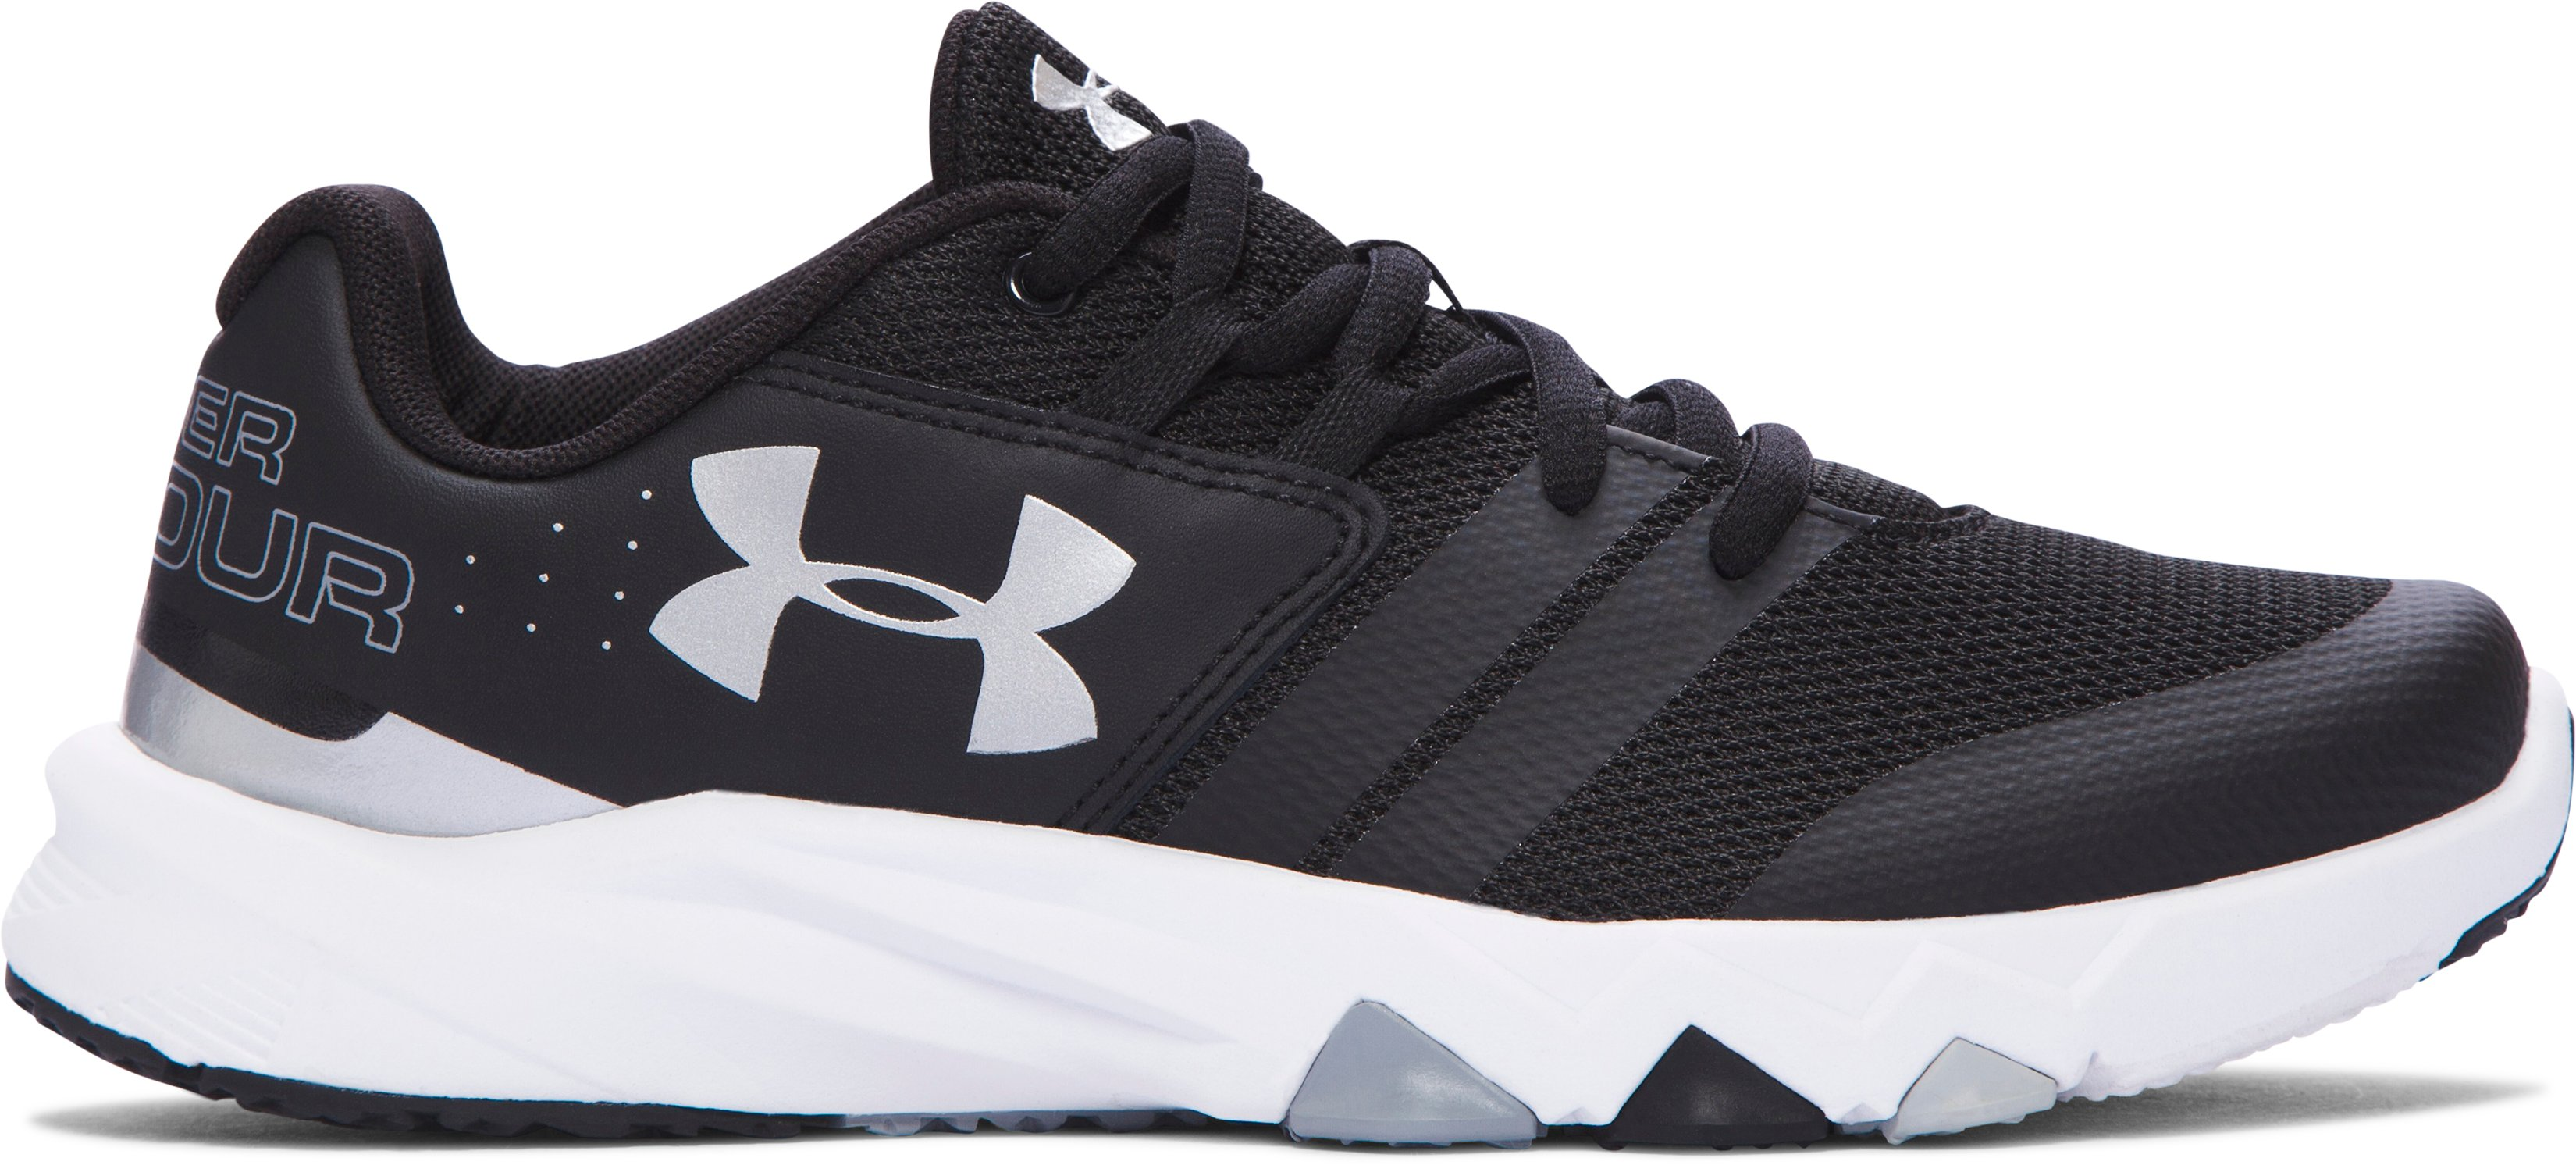 Boys' Grade School UA Primed Running Shoes, Black